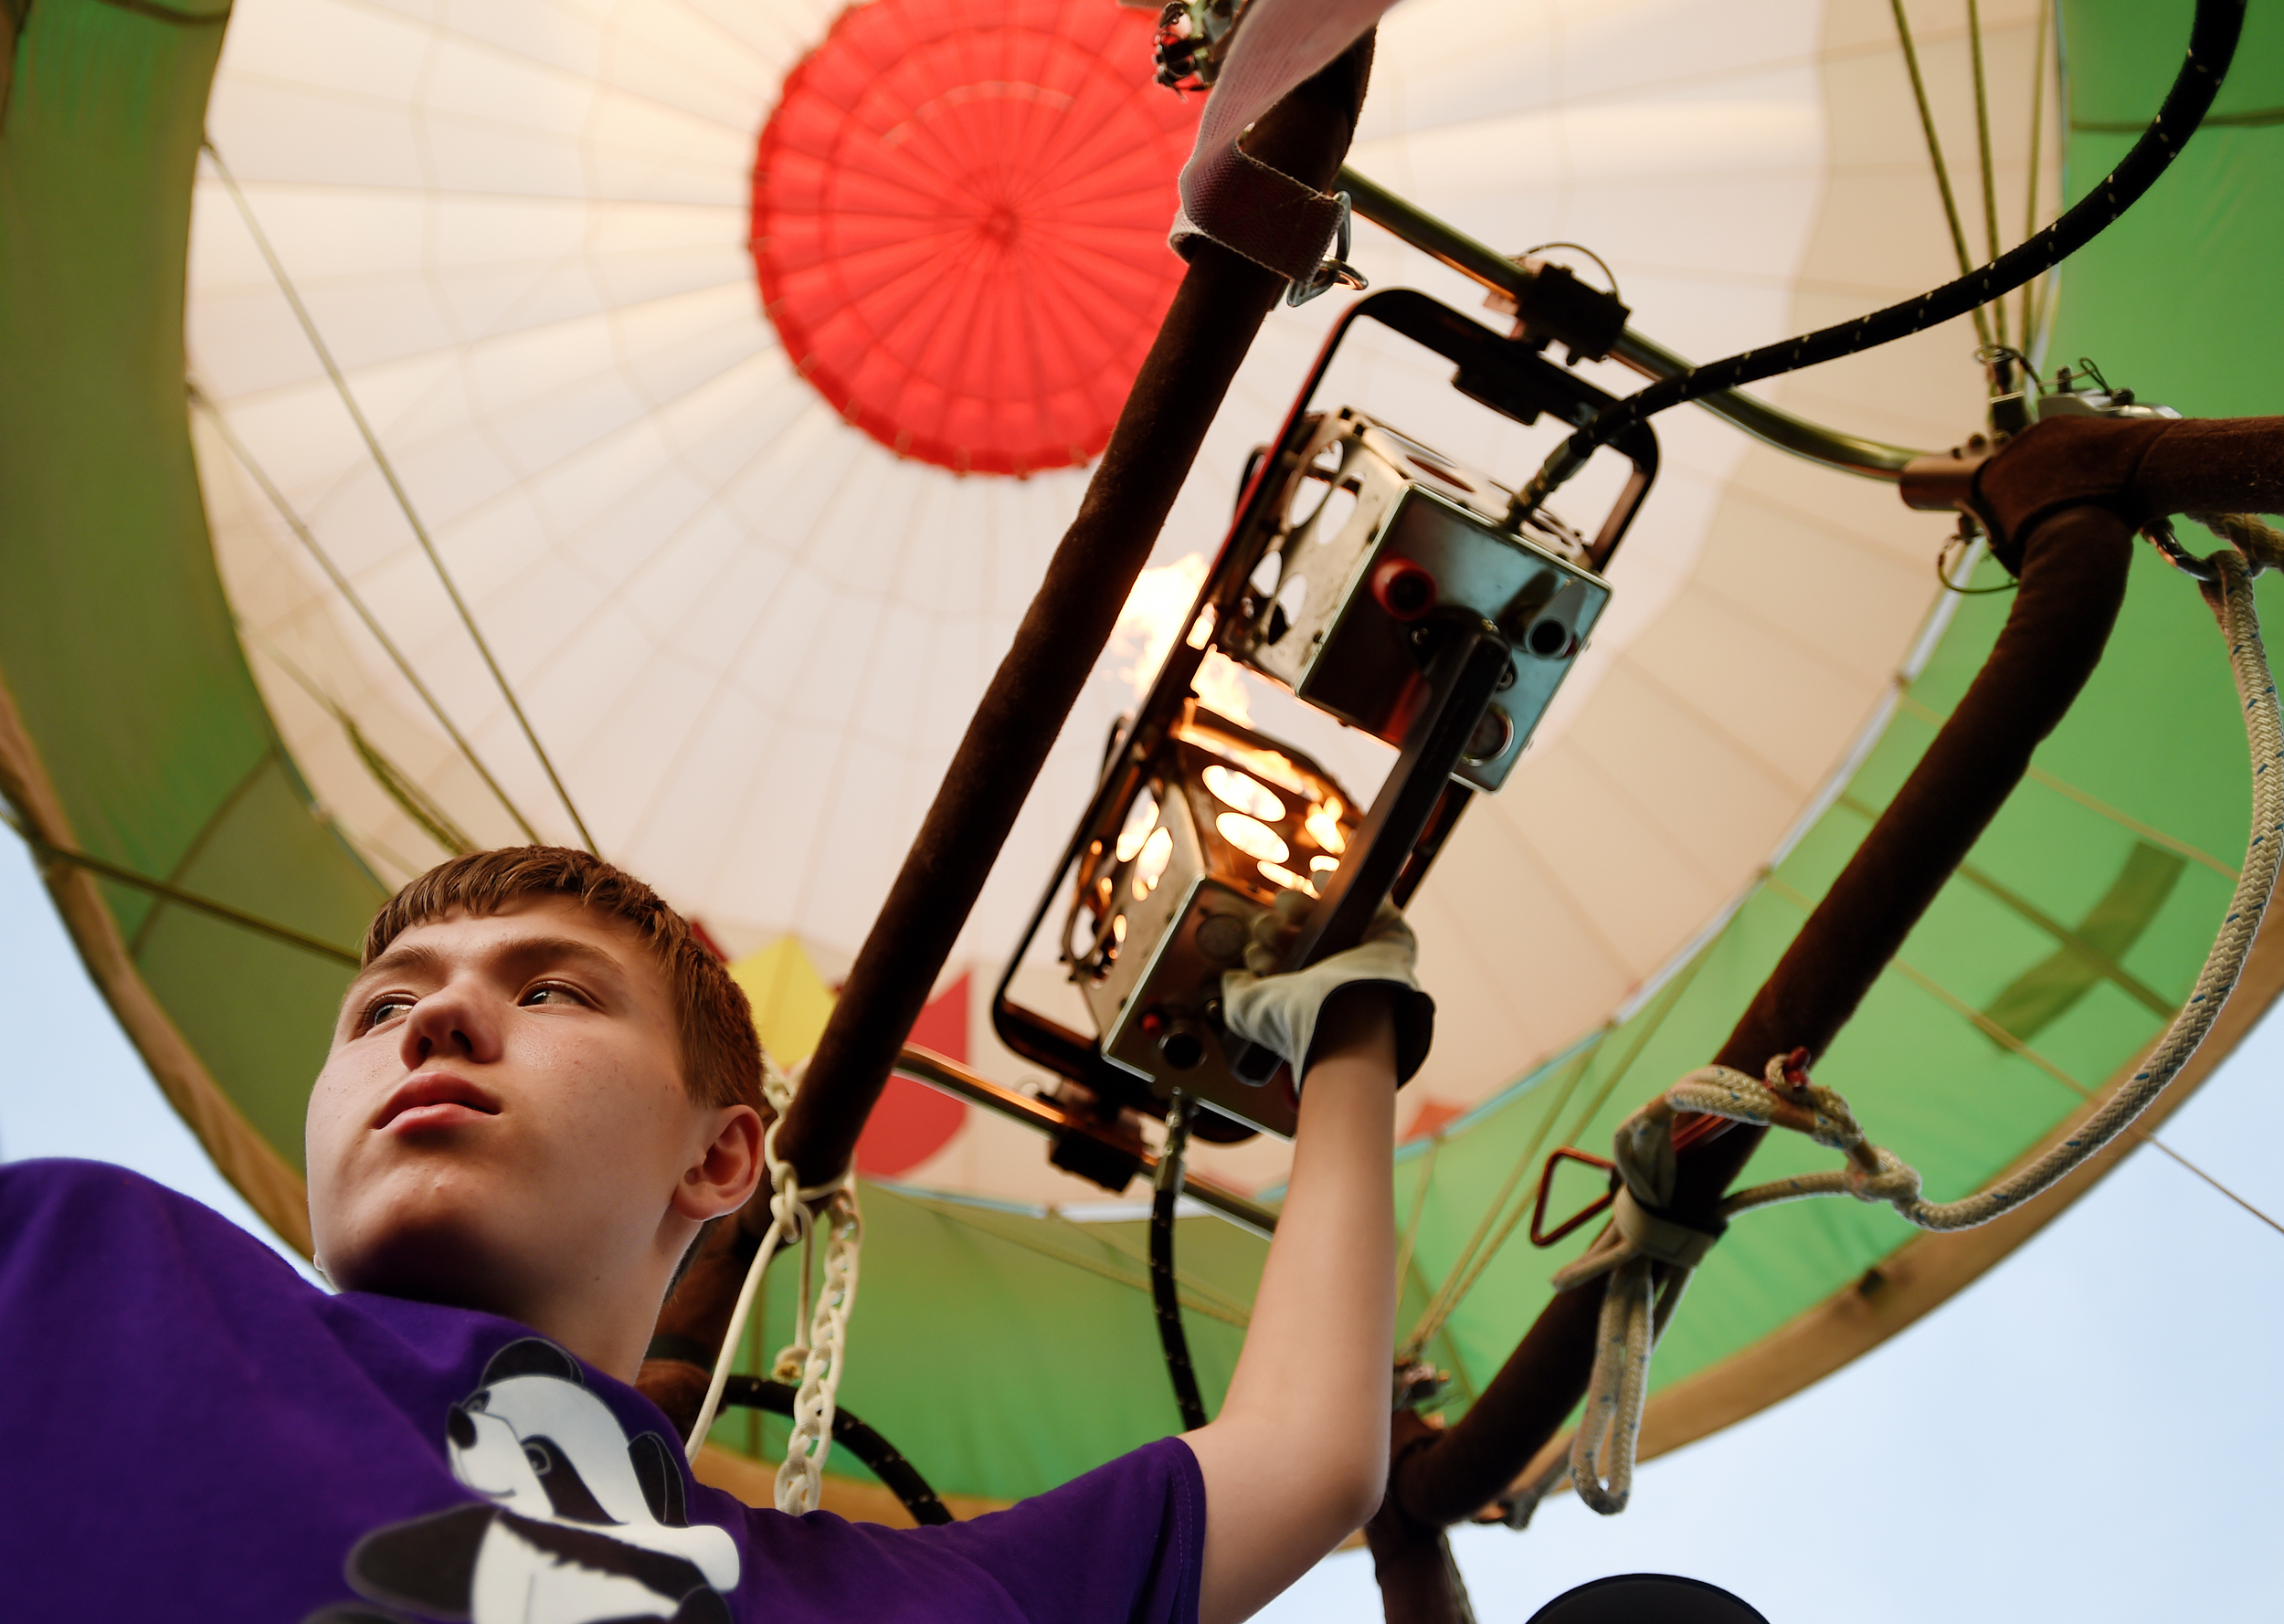 Jack Frankie, 13, of Bellport, NY, controls the hot air in a balloon during the Great Eastern Balloon Camp at Kutztown University in Kutztown, PA, on July 11, 2016. (Reading Eagle: Sarah Stier)